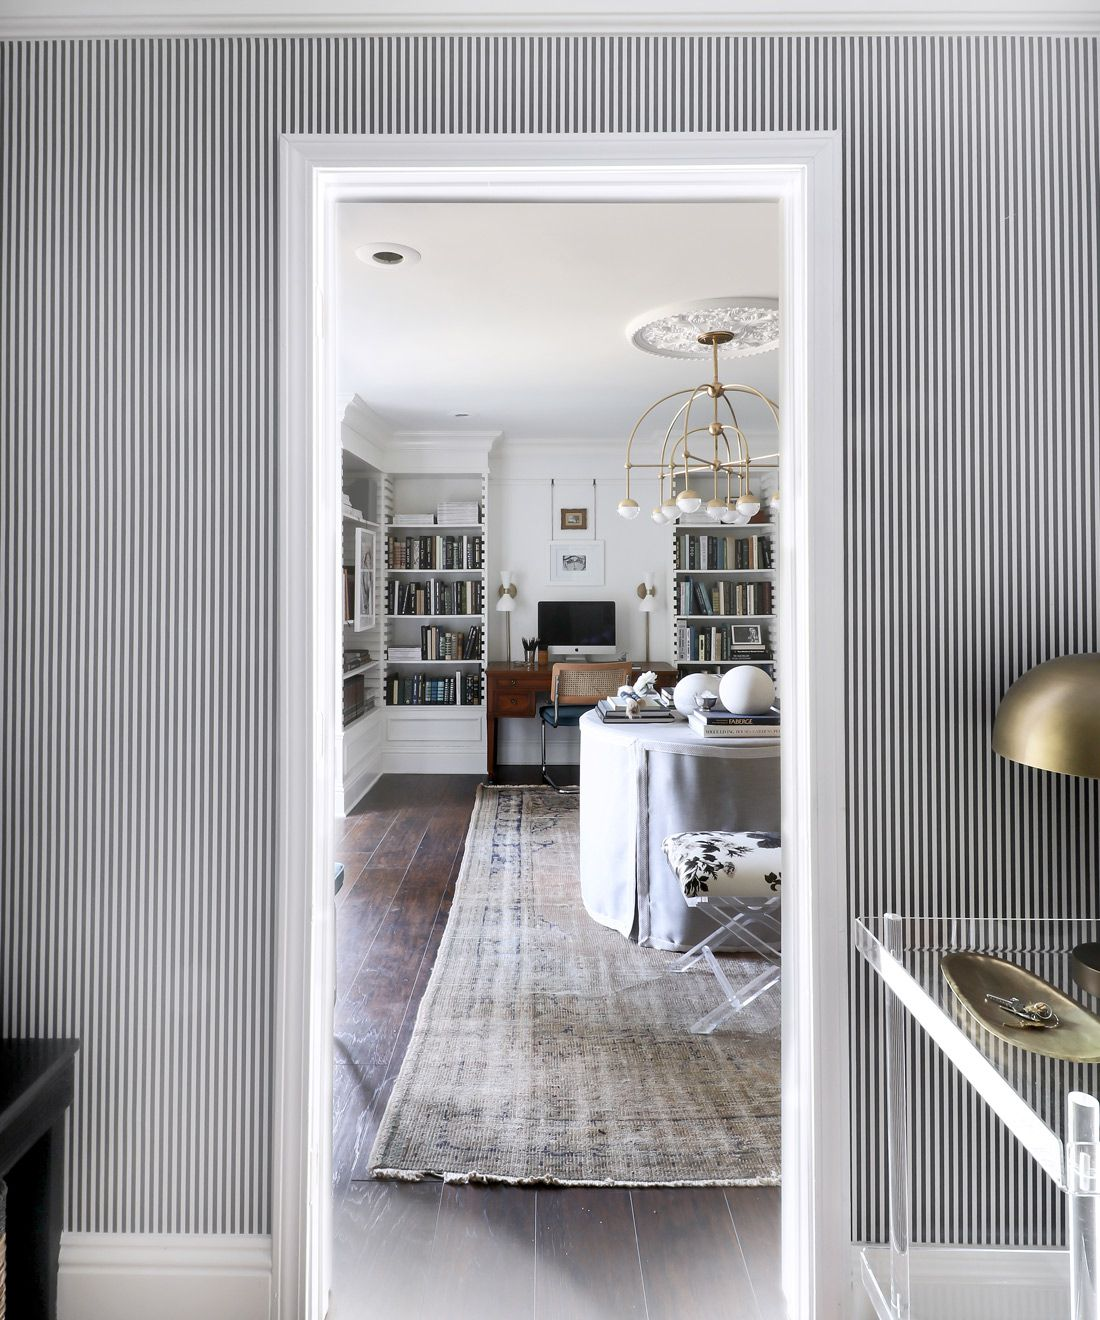 Candy Stripe Wallpaper • Striped Wallpaper • Black & White Stripe Wallpaper • Kristin Jackson • @huntedinterior